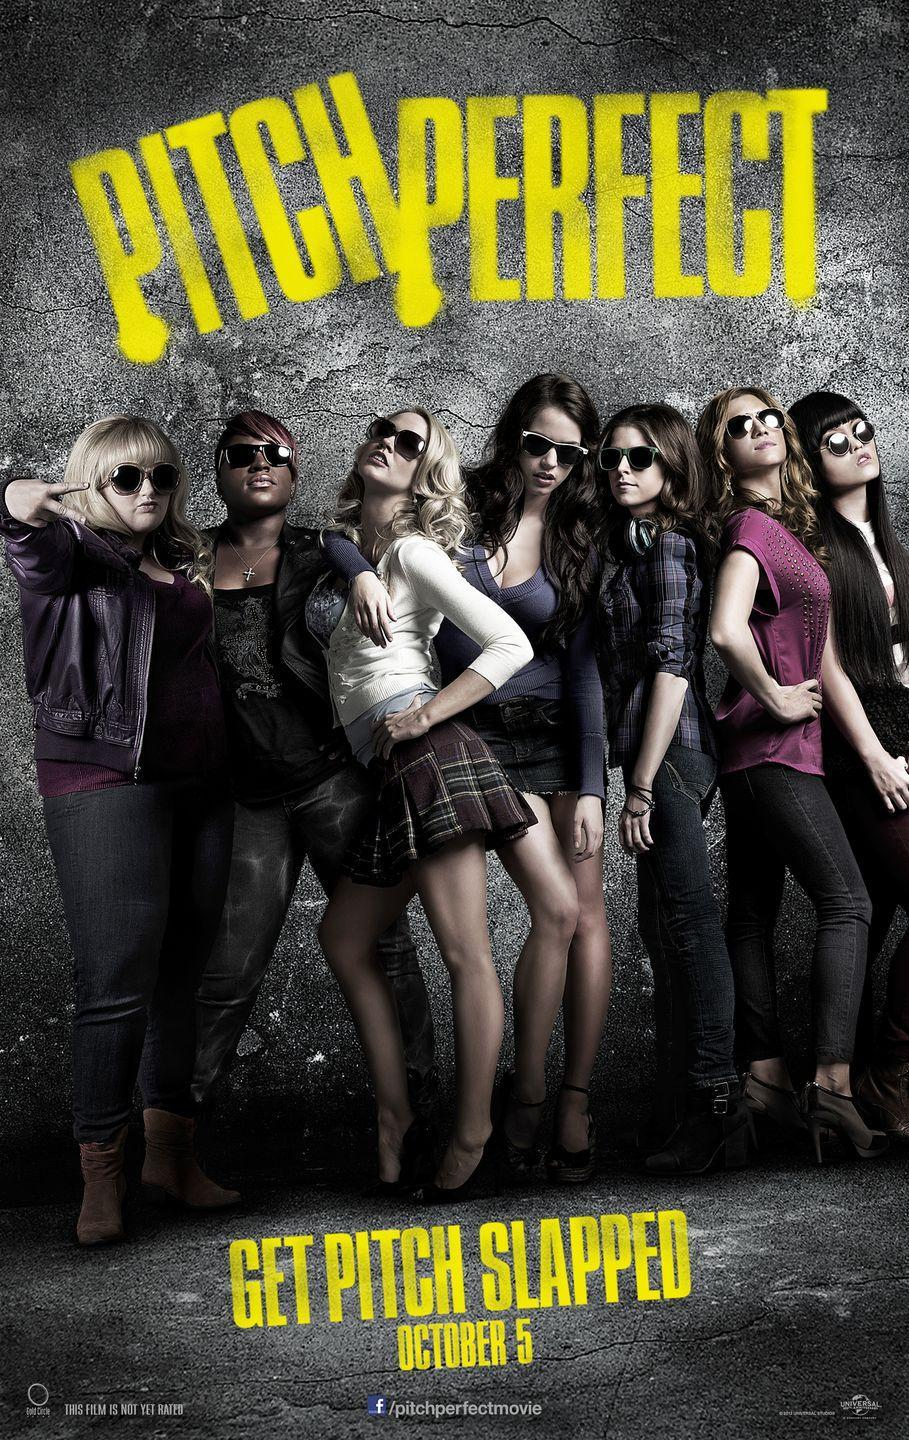 """<p>University a cappella group members (and music fans in general) will definitely appreciate the beautiful harmonies in <em>Pitch Perfect</em>. What's more, the empowering storyline of an all-female vocal group conquering the singing world one competition at a time is girl power at its best. </p><p><a class=""""link rapid-noclick-resp"""" href=""""https://www.amazon.com/Pitch-Perfect-Anna-Kendrick/dp/B00ADS90EQ/ref=sr_1_2?dchild=1&keywords=pitch+perfect&qid=1596922324&sr=8-2&tag=syn-yahoo-20&ascsubtag=%5Bartid%7C10055.g.33513354%5Bsrc%7Cyahoo-us"""" rel=""""nofollow noopener"""" target=""""_blank"""" data-ylk=""""slk:WATCH NOW"""">WATCH NOW</a></p>"""